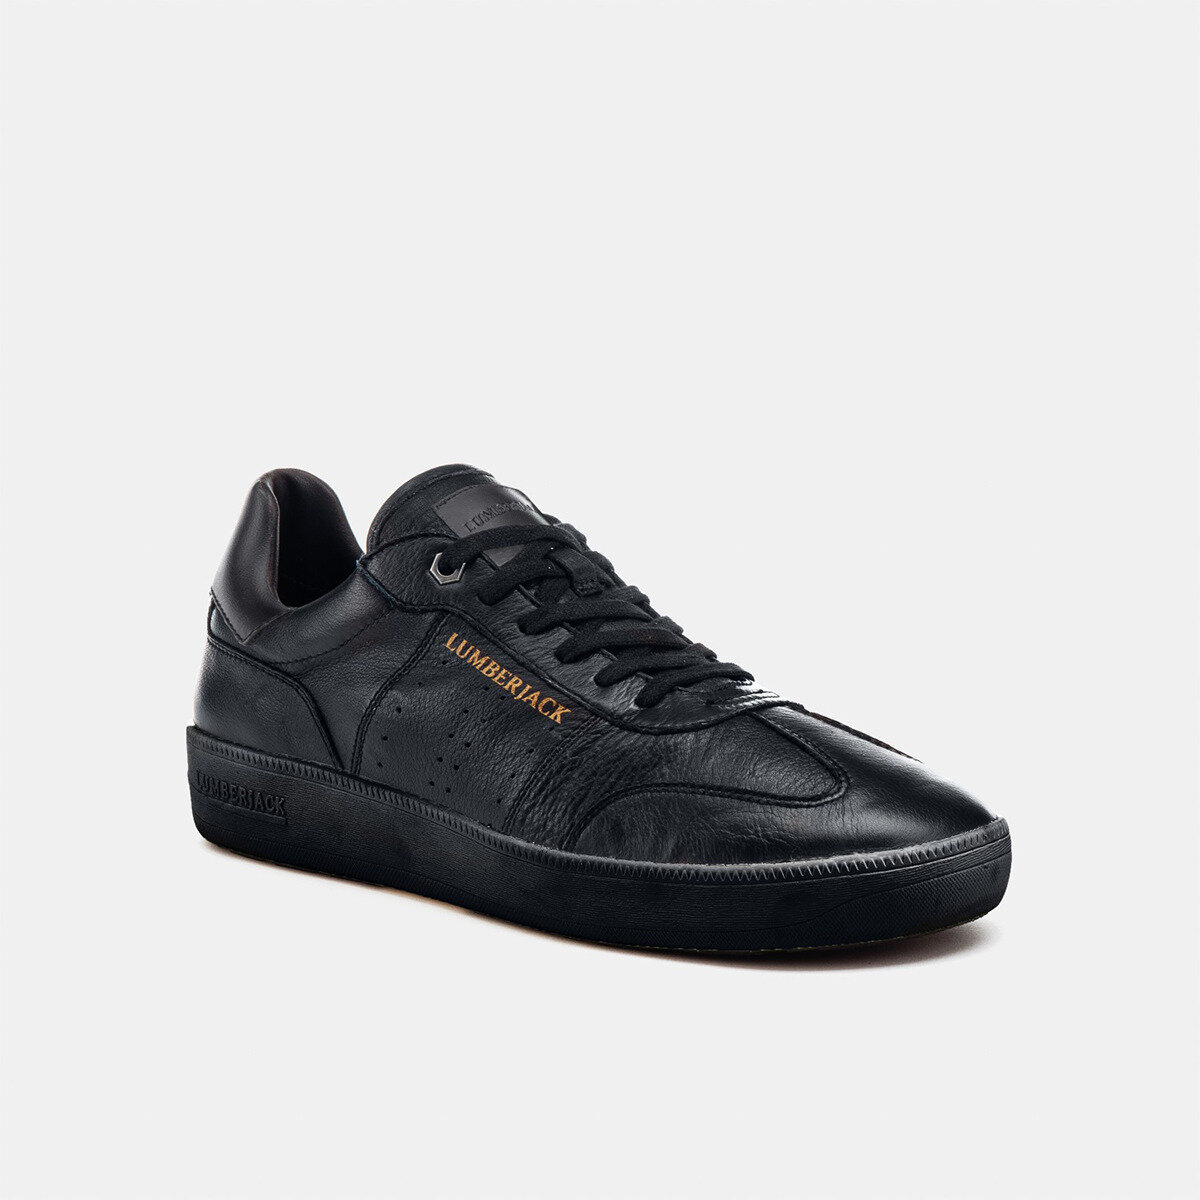 SUMMER CHUCK BLACK Man Sneakers